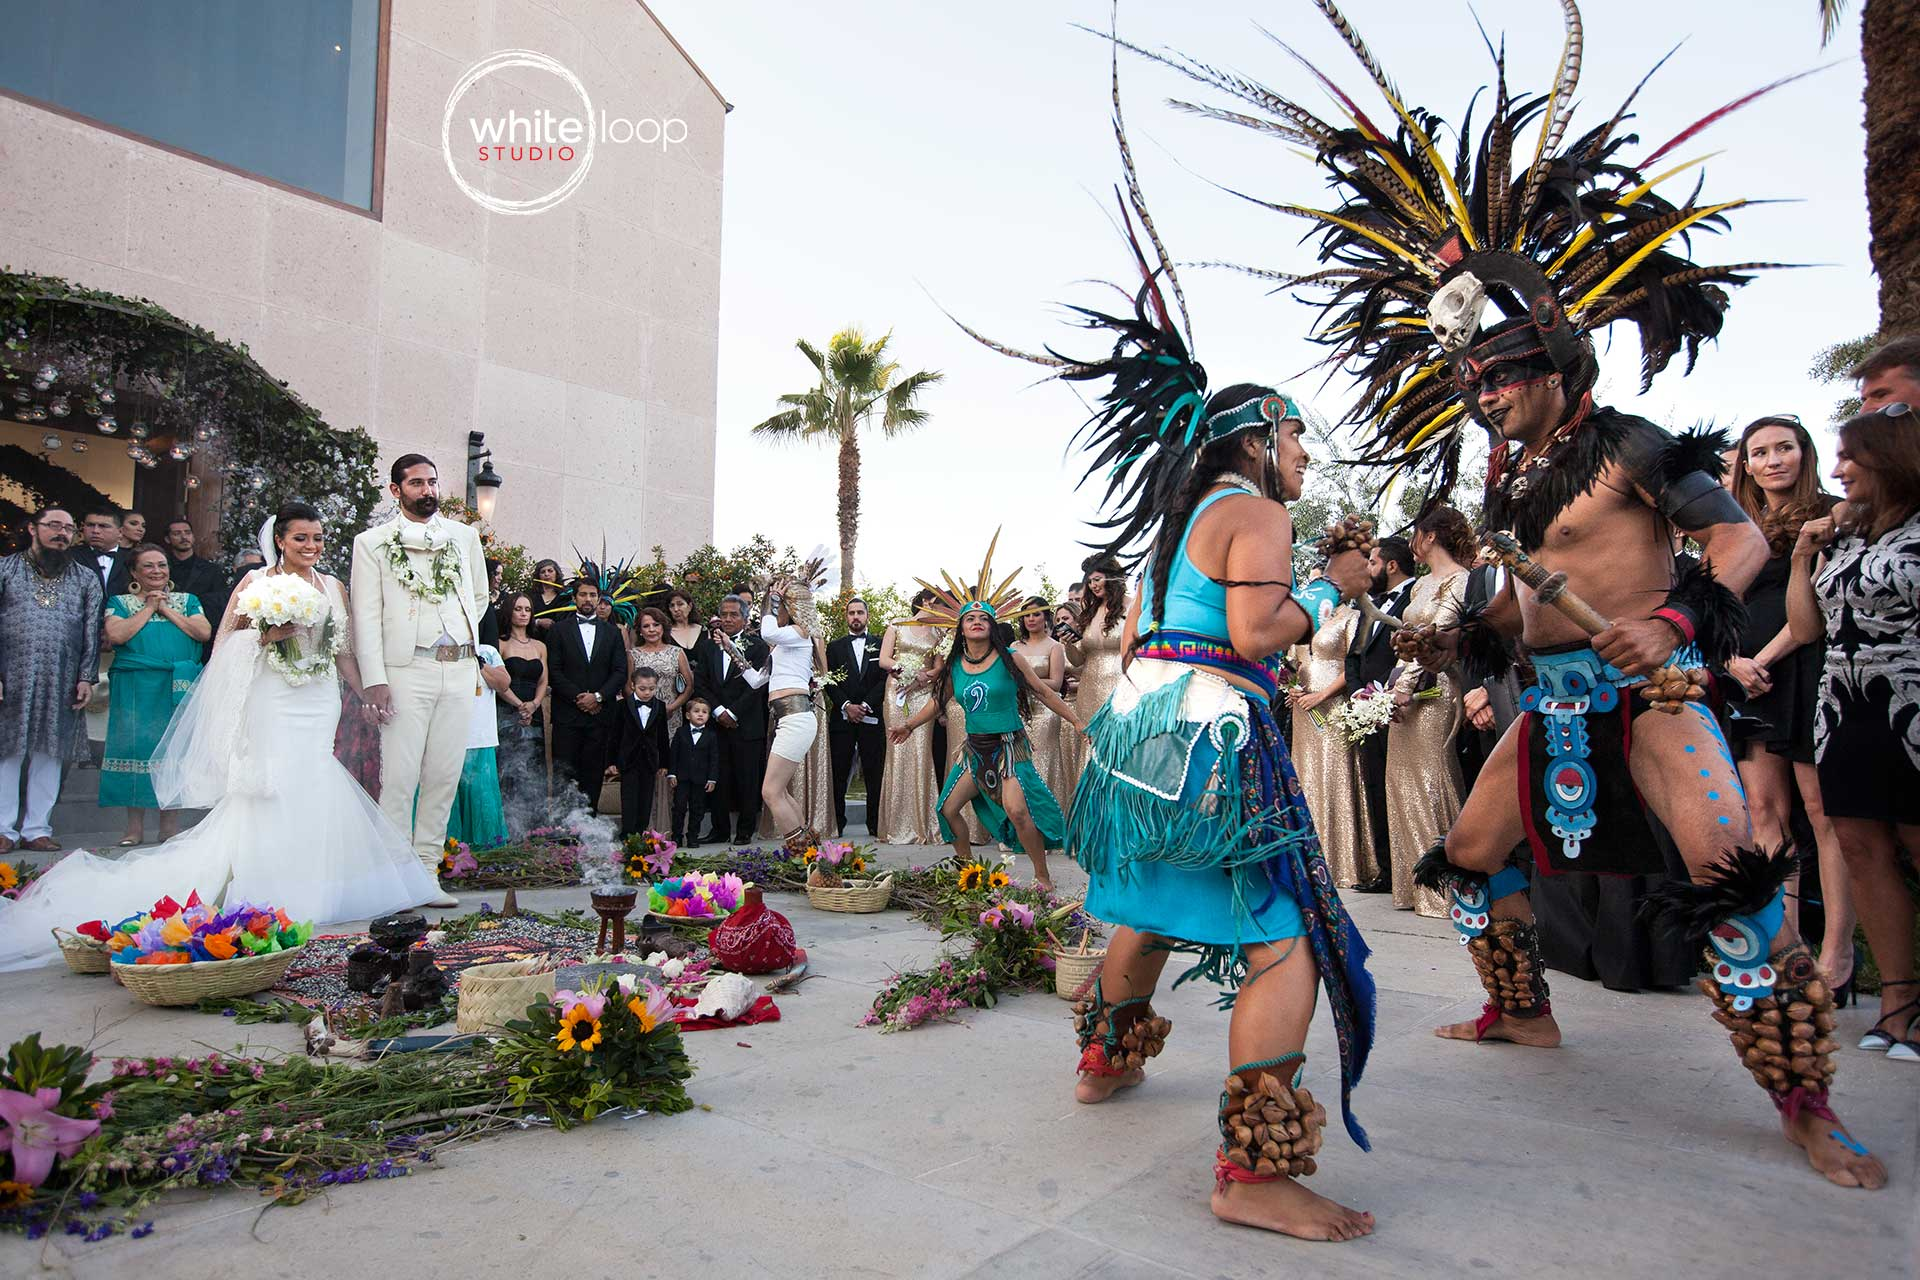 The bride and groom leave the church to witness a nahuatl tradition of Mexican culture, everything is planned in order to celebrate the marriage of the couple.